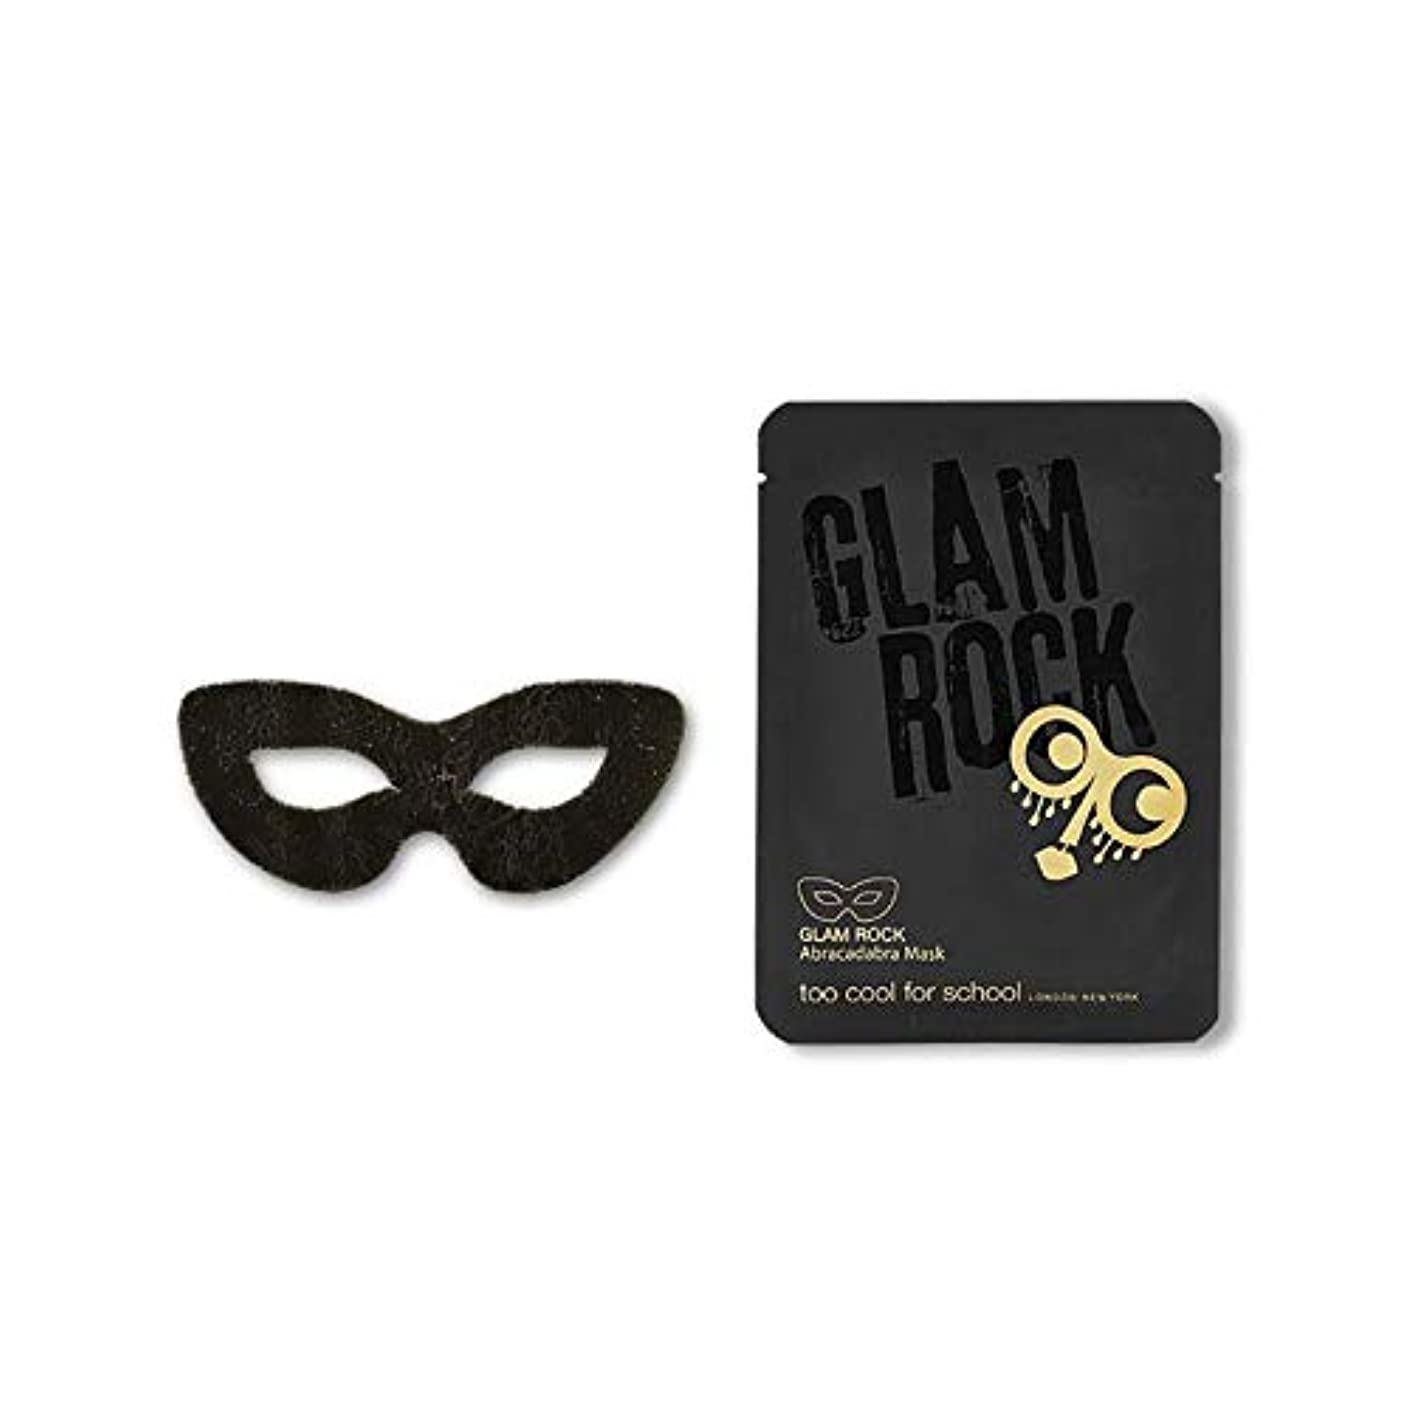 TOO COOL FOR SCHOOL Glam Rock Abracadabra Mask (並行輸入品)